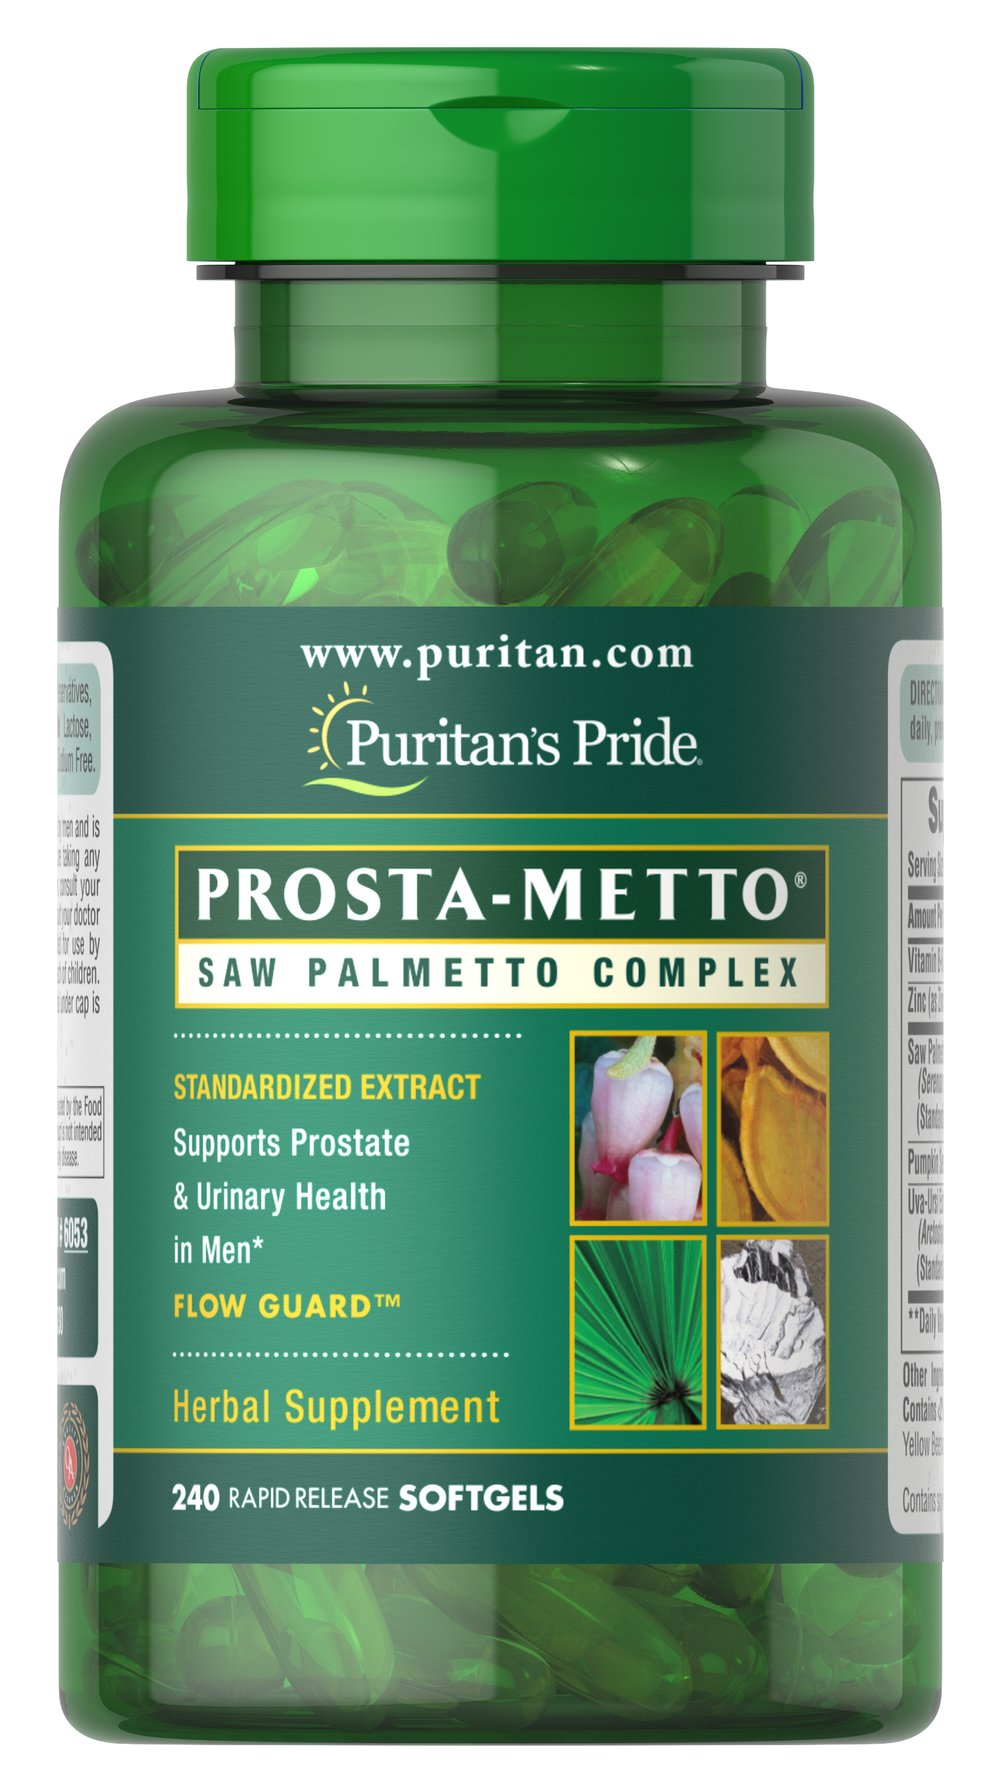 Saw Palmetto Complex For Men <p>Extra Strength Prosta-Metto® softgels deliver 160 mg of standardized Saw Palmetto to support prostate and urinary health in men.** Saw Palmetto is an extract derived from the berry of the Saw Palmetto tree and is the leading herb for men's health.** This formulation also includes Pumpkin Seed Oil, Pygeum and Uva-Ursi, traditional ingredients for men's health, plus Zinc for the immune system.** </p>  240 Softgels  $43.99